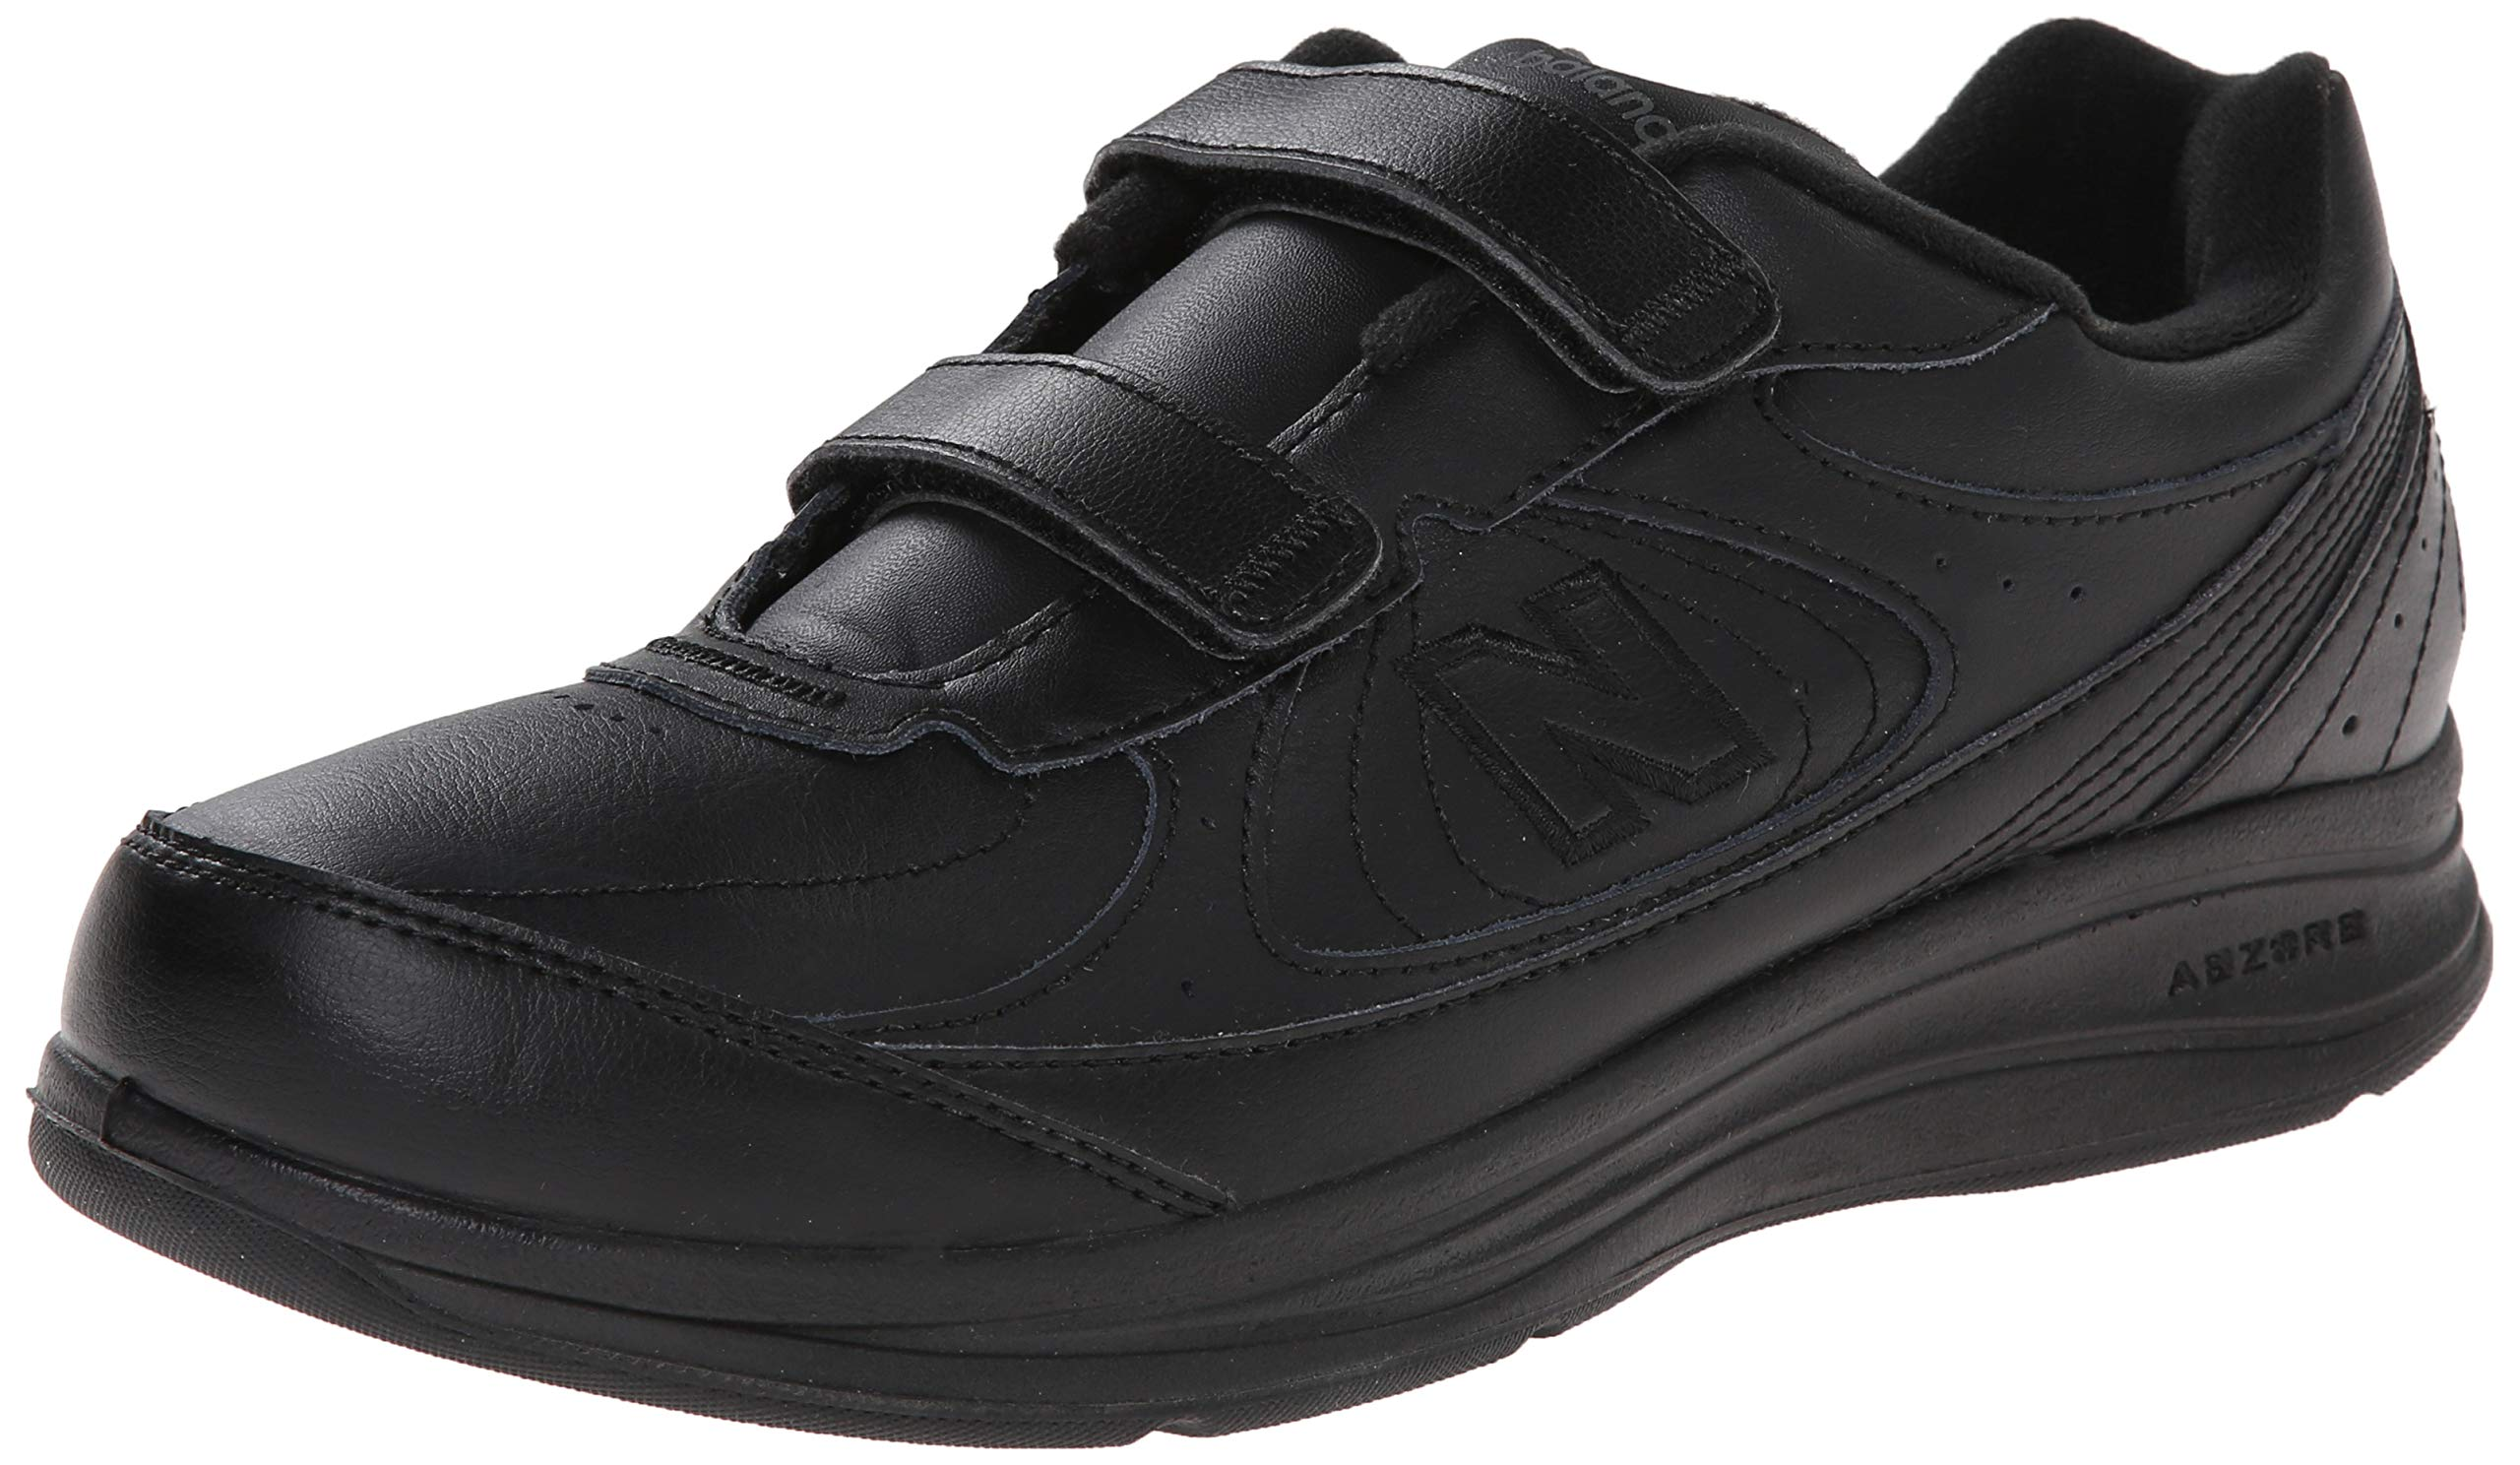 New Balance Men's MW577 Hook and Loop Walking Shoe, Black, 12.5 2E US by New Balance